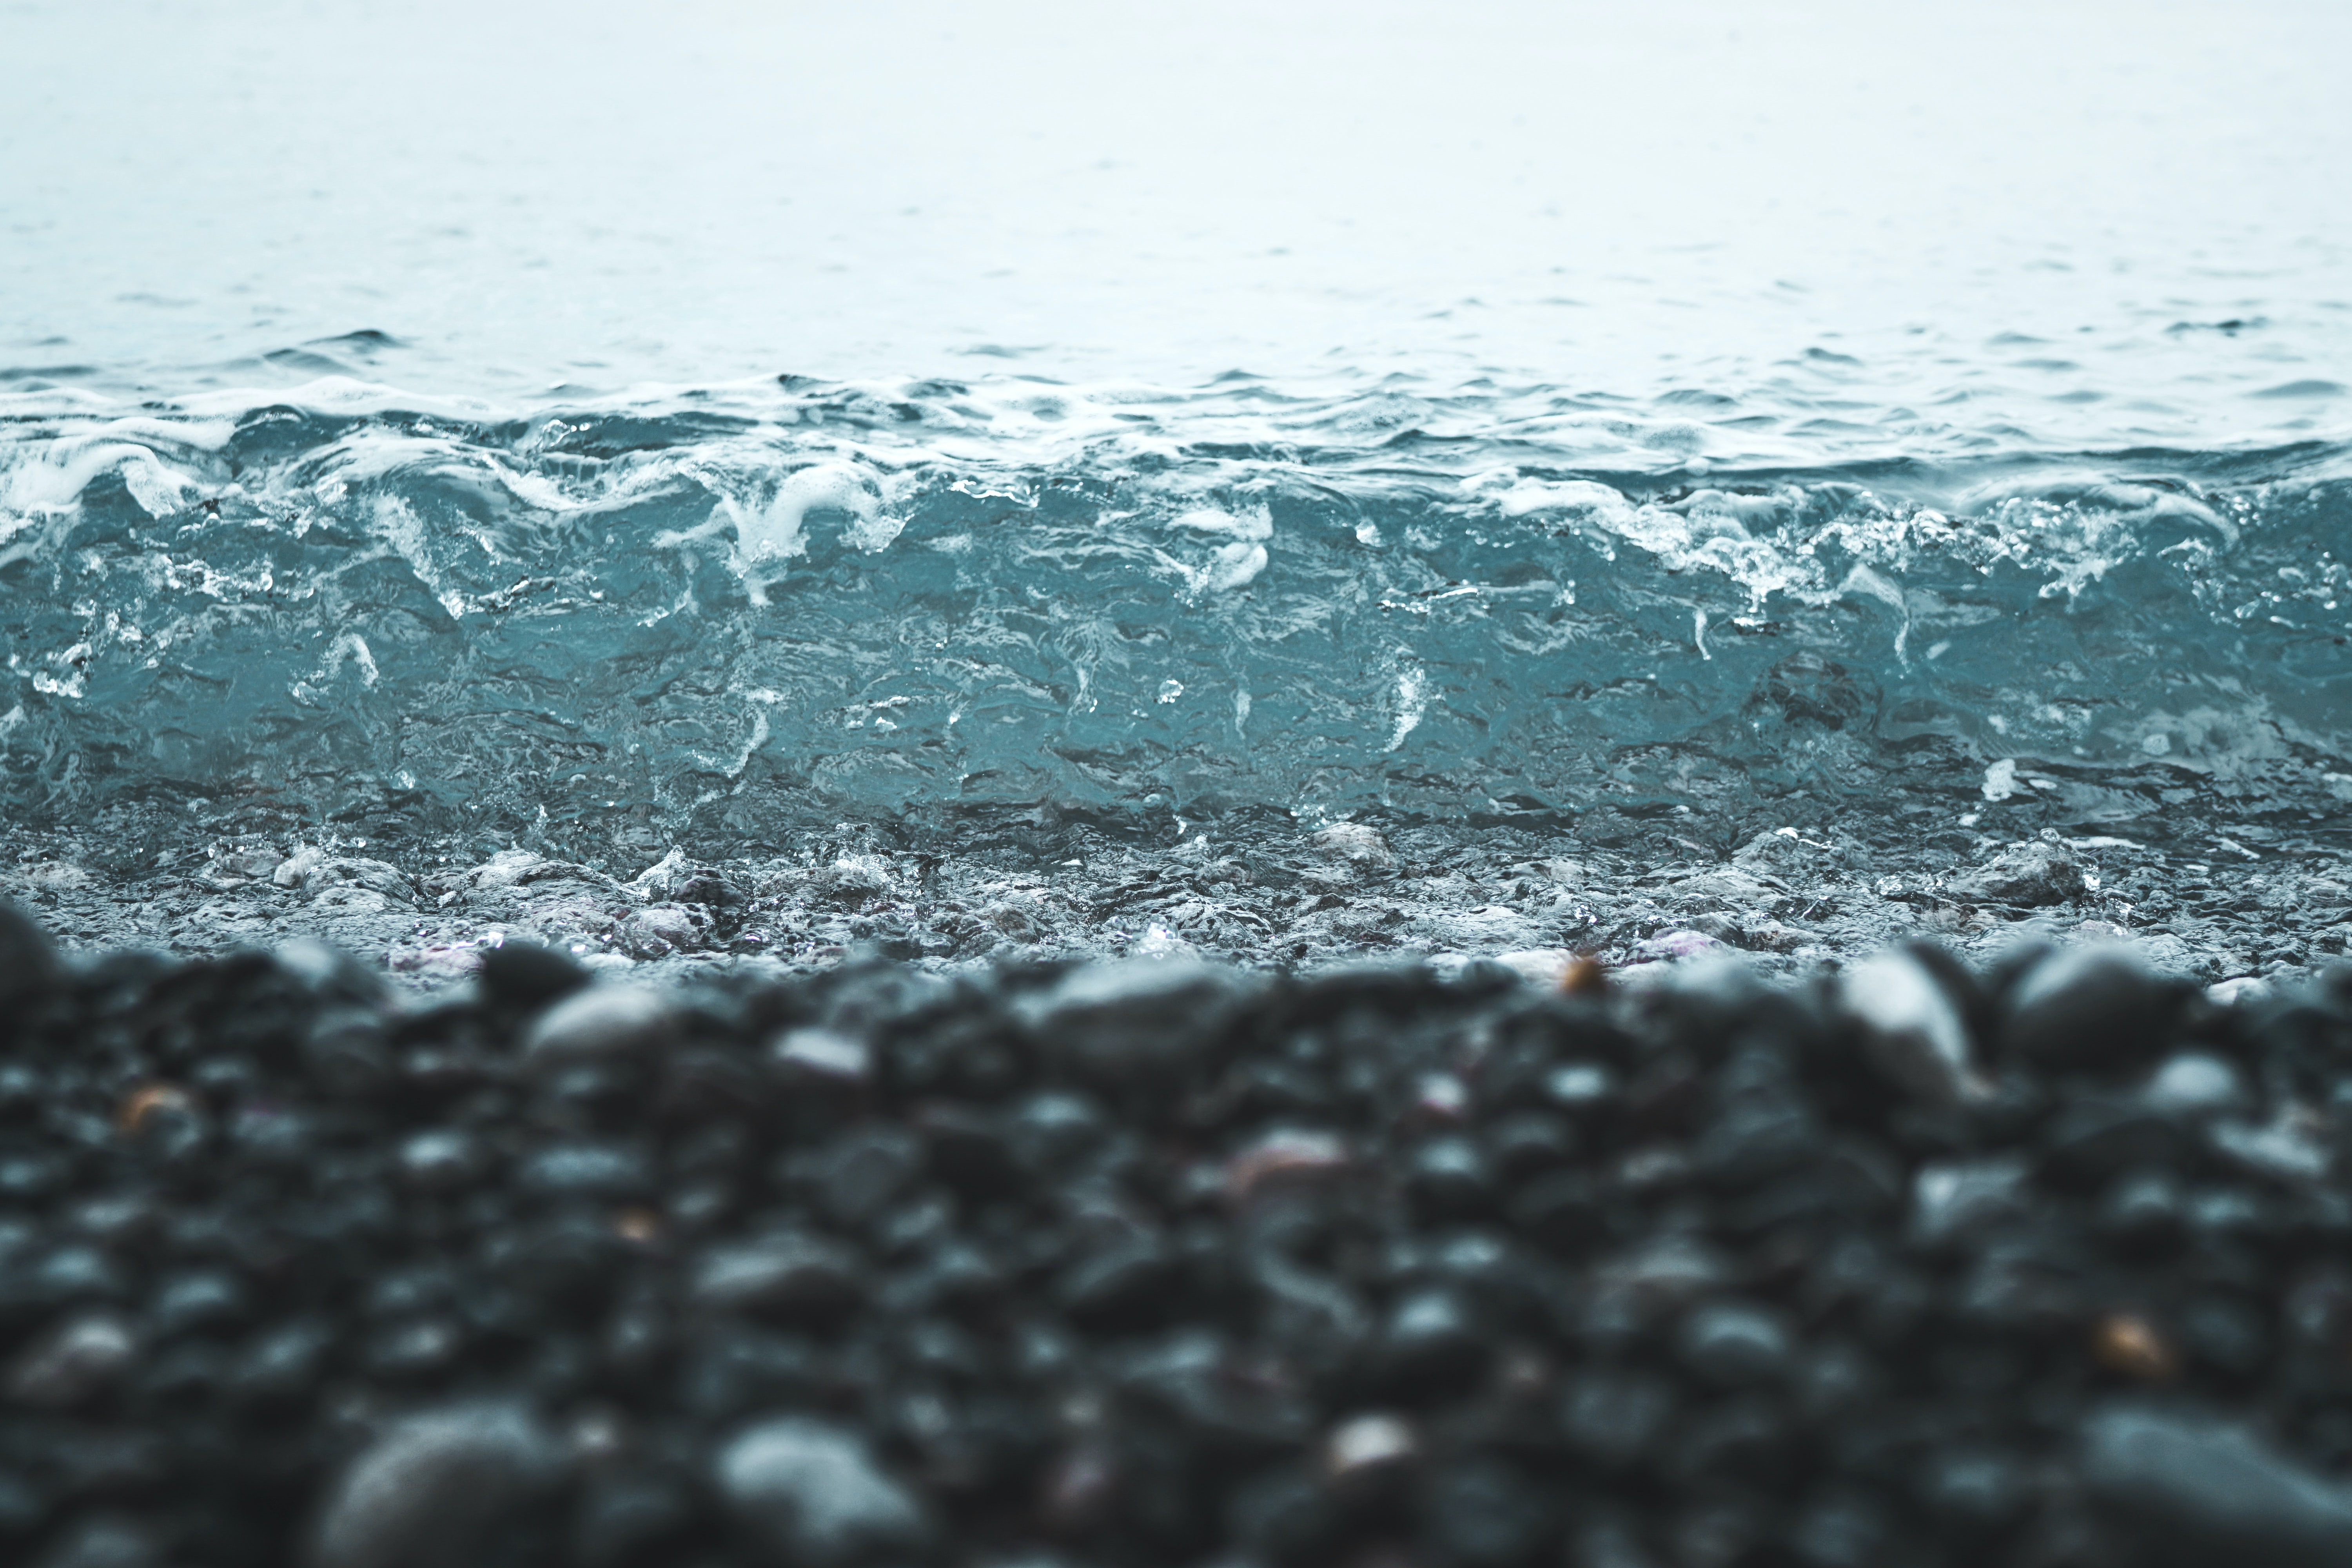 Small wave washing on a pebble beach